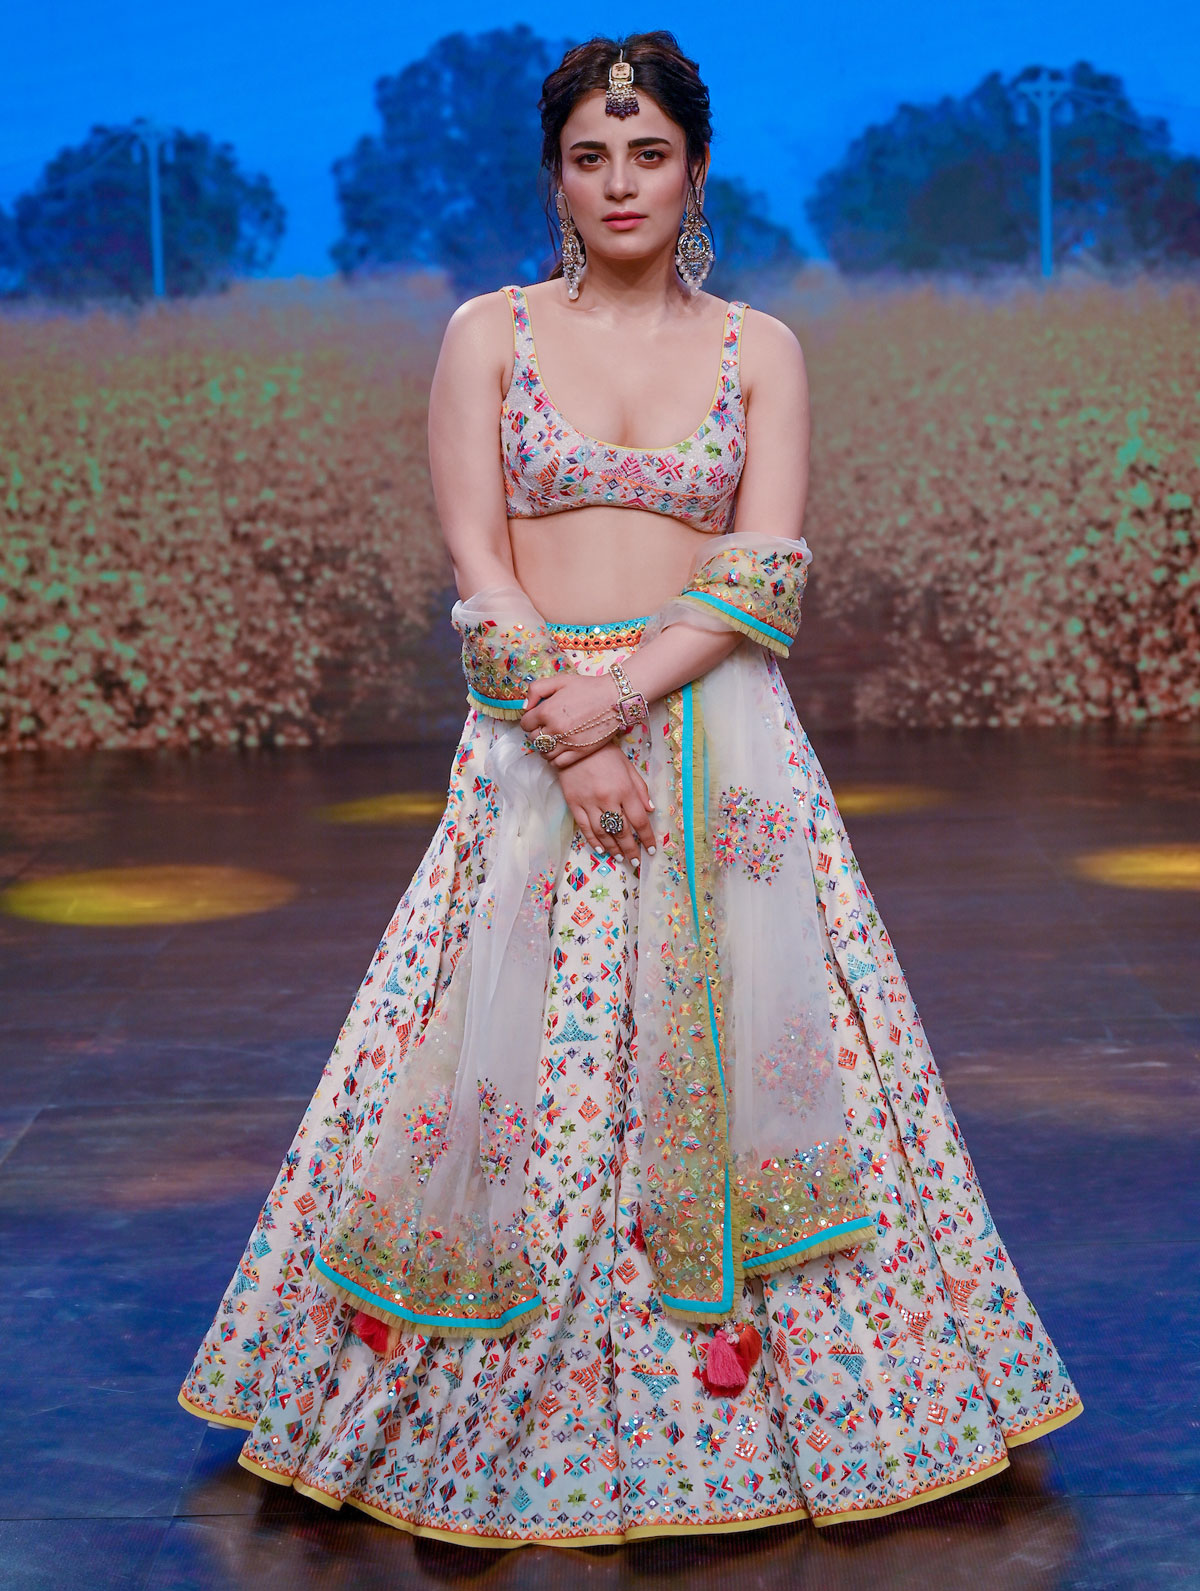 Diana or Sonakshi: Who's the hottest showstopper?